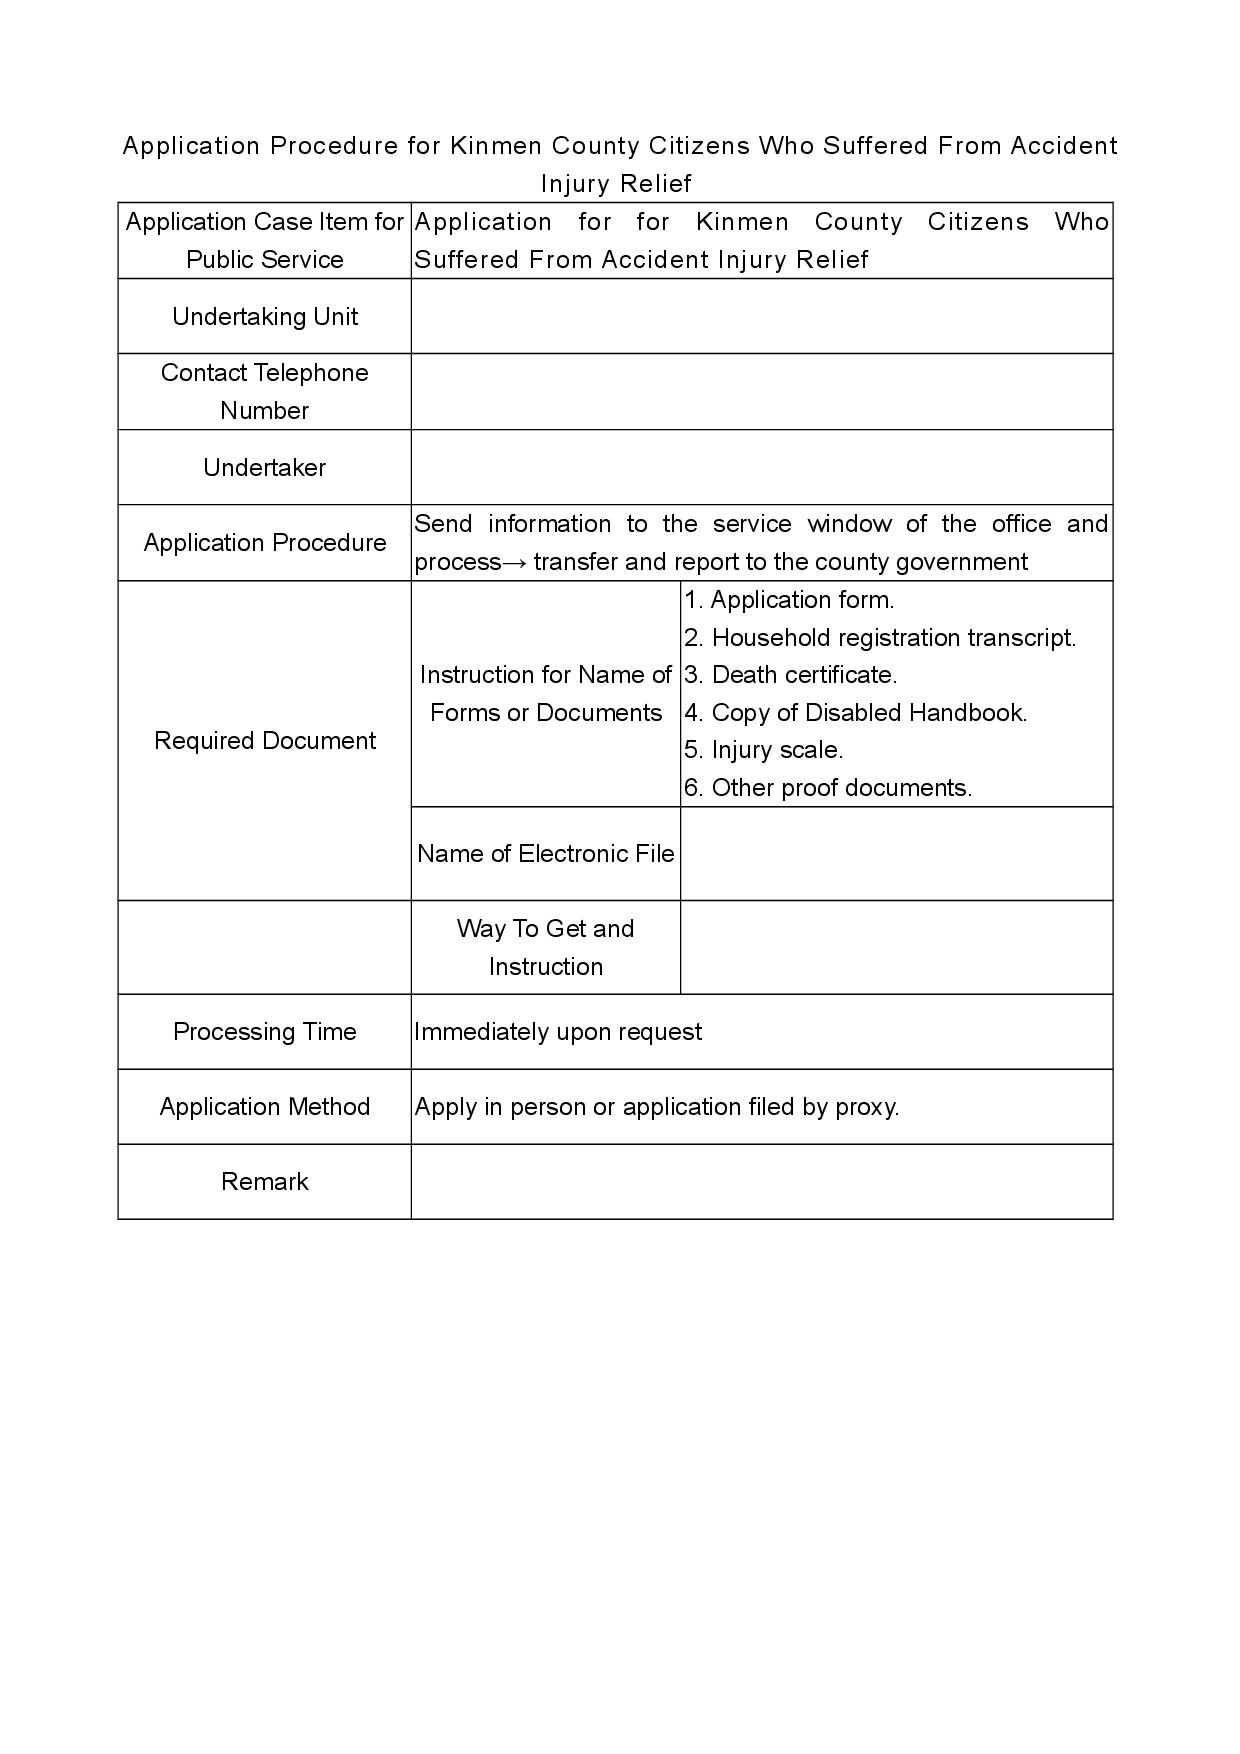 Application Procedure for Kinmen County Citizens Who Suffered From Accident Injury Relief